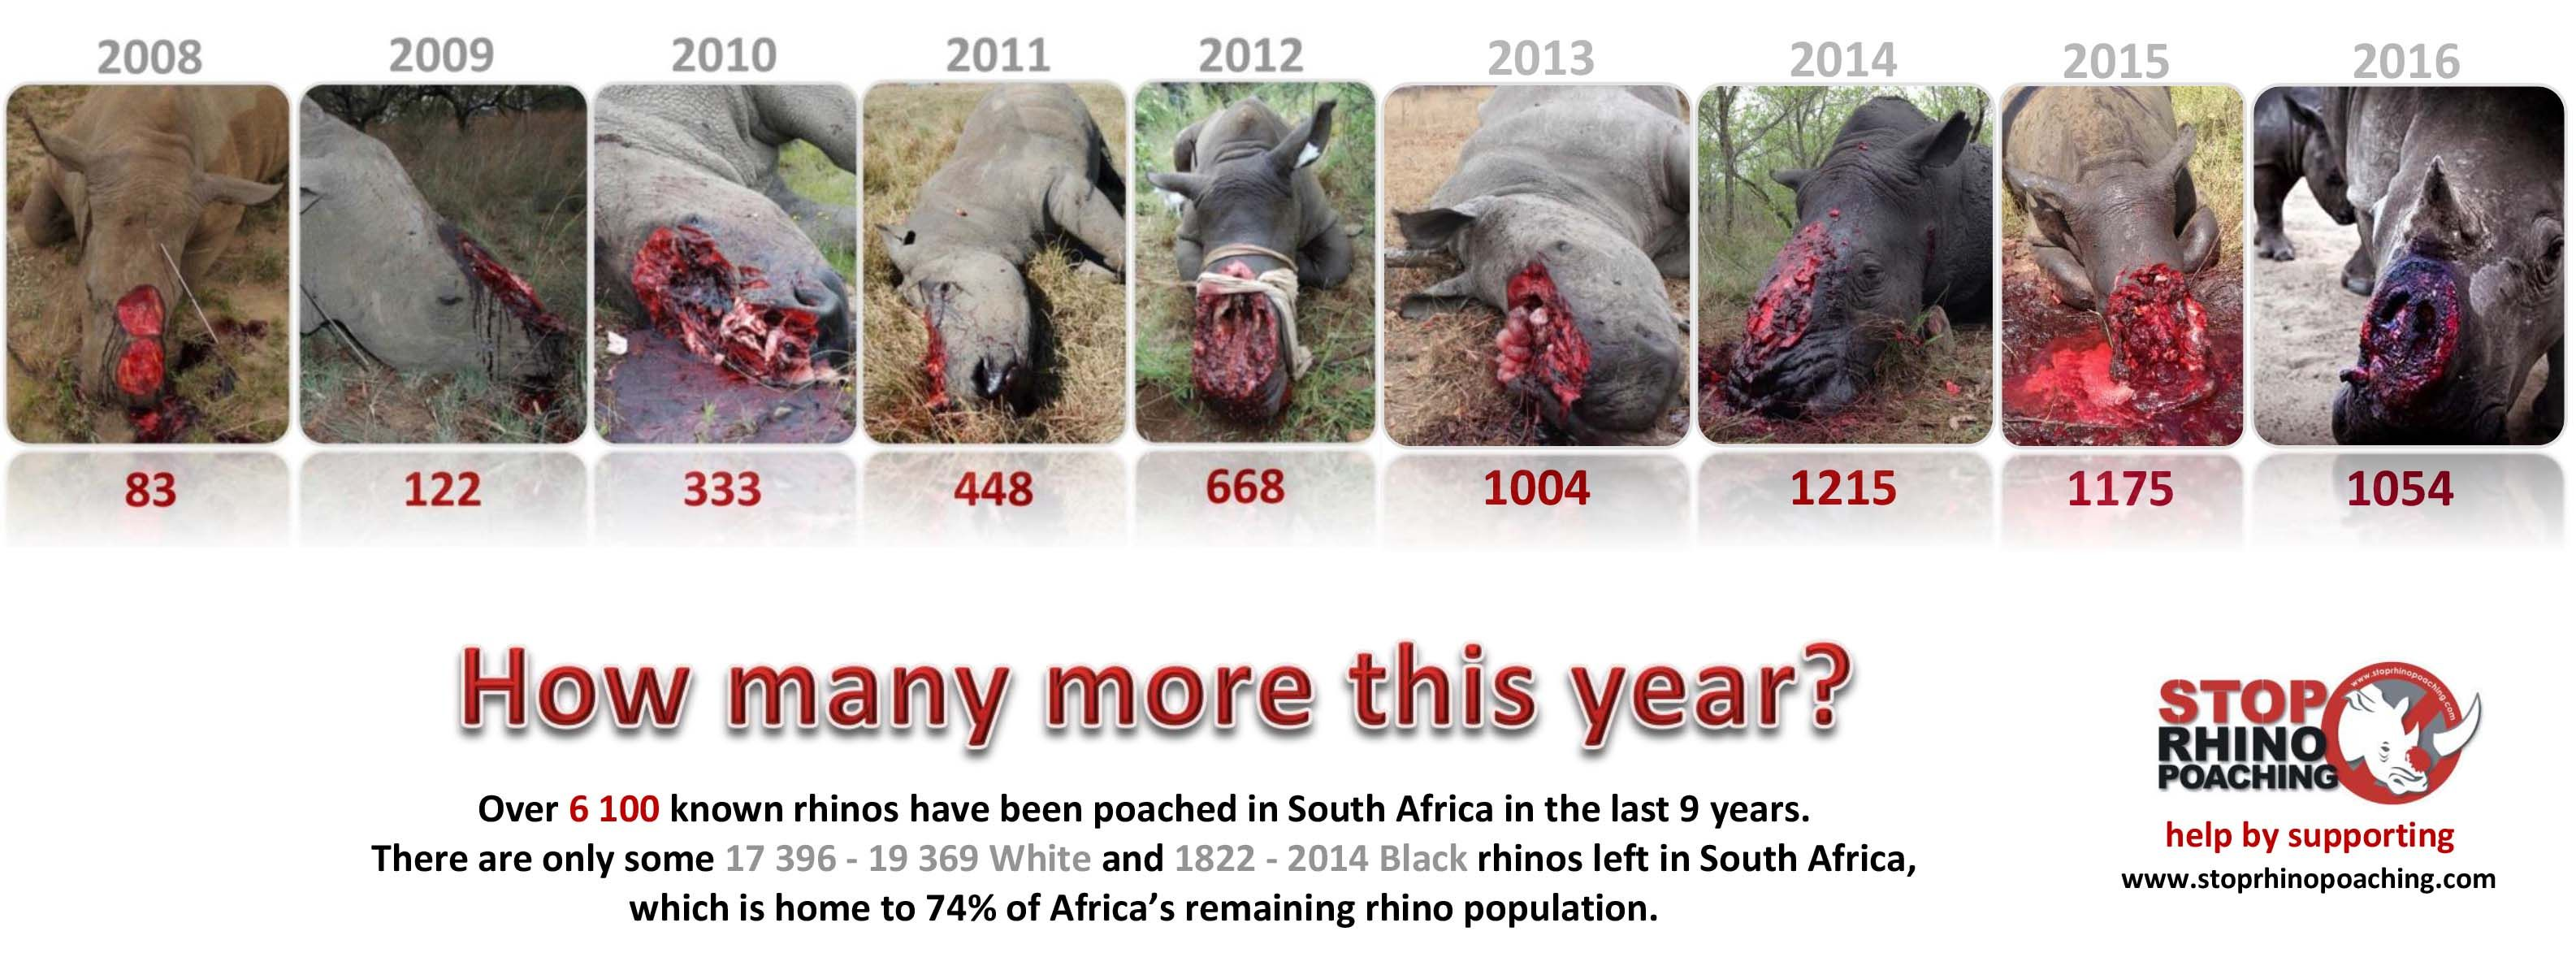 Animal Crocodile And Eliphamtcomic Porn rhino poaching statistics | rhino poaching, africa, elephant